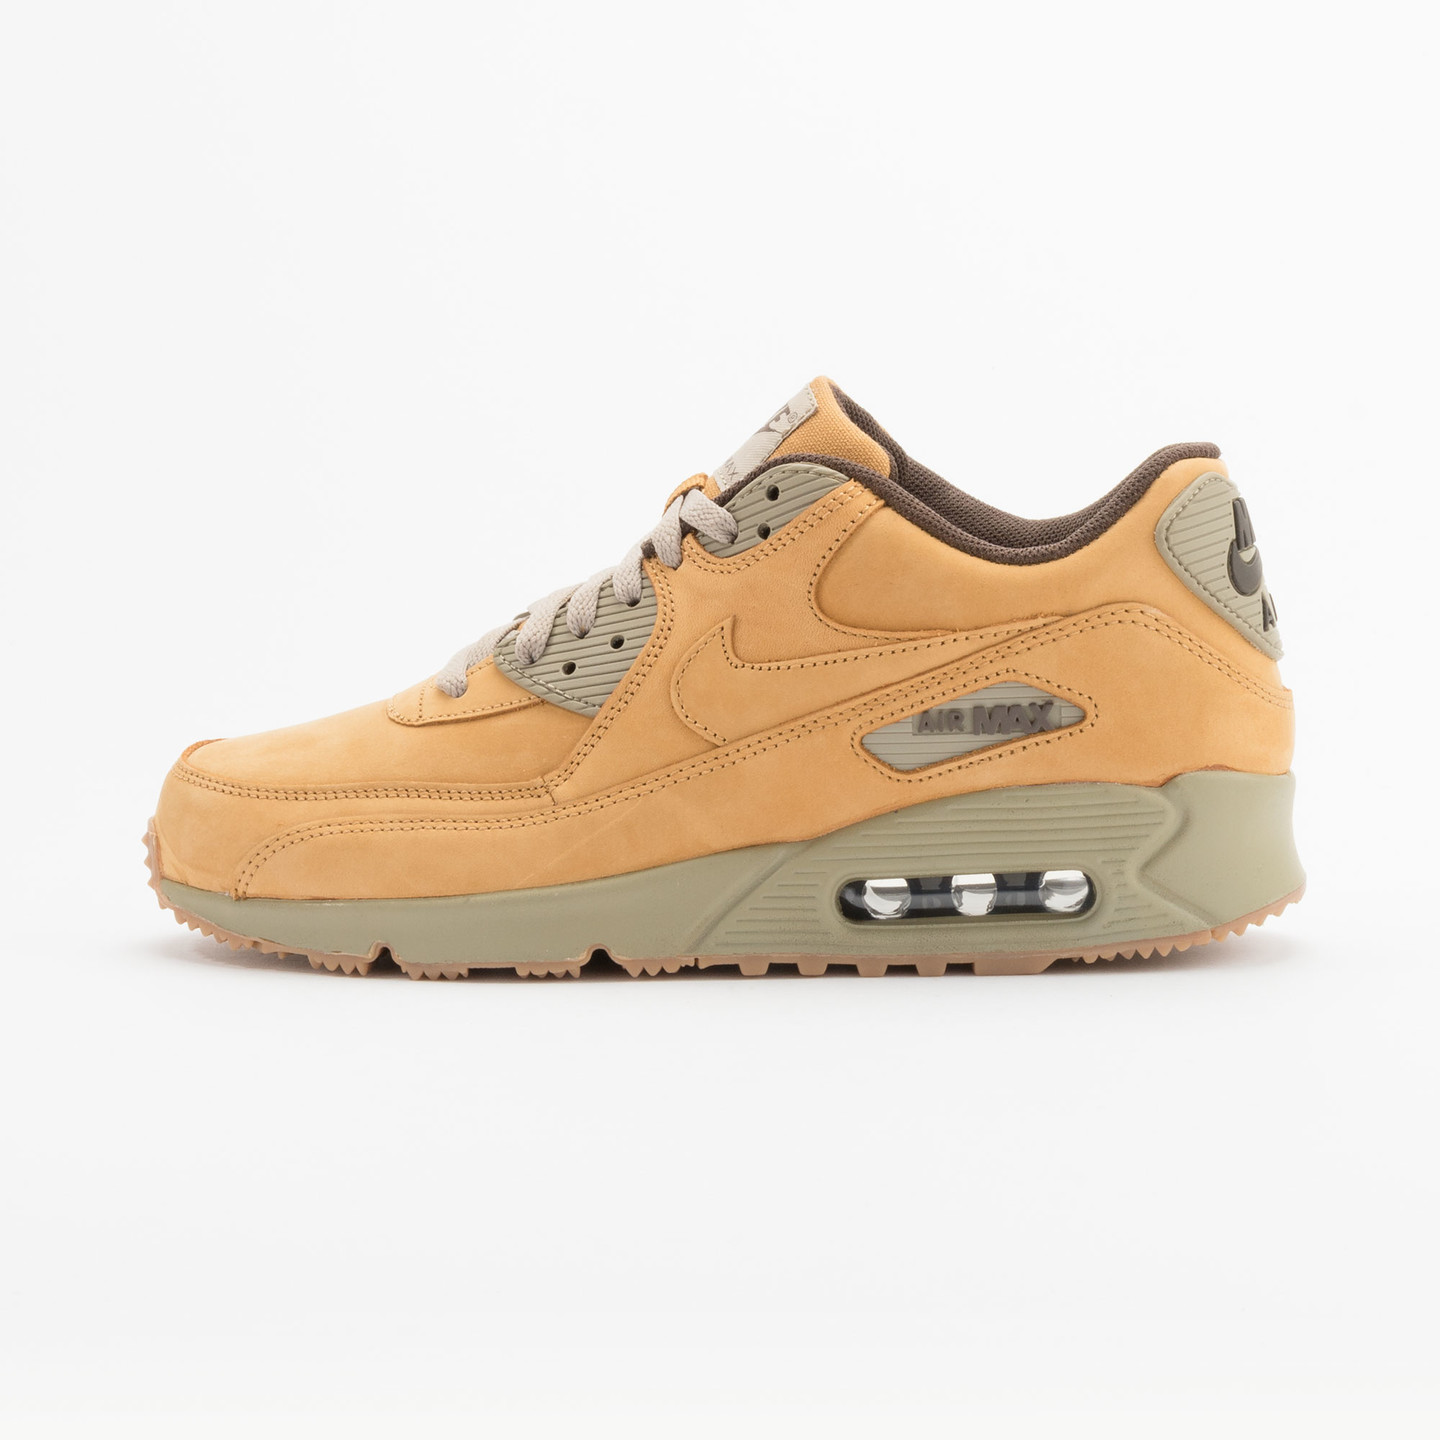 Nike Air Max 90 Winter Premium Bronze / Baroque Brown 683282-700-47.5